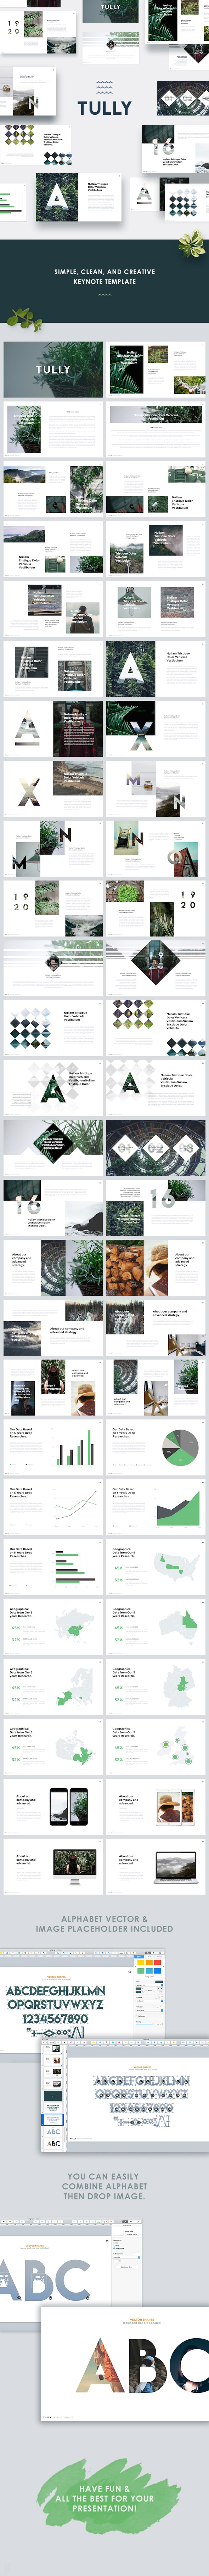 Tully - Clean Keynote Template - Keynote Templates Presentation Templates